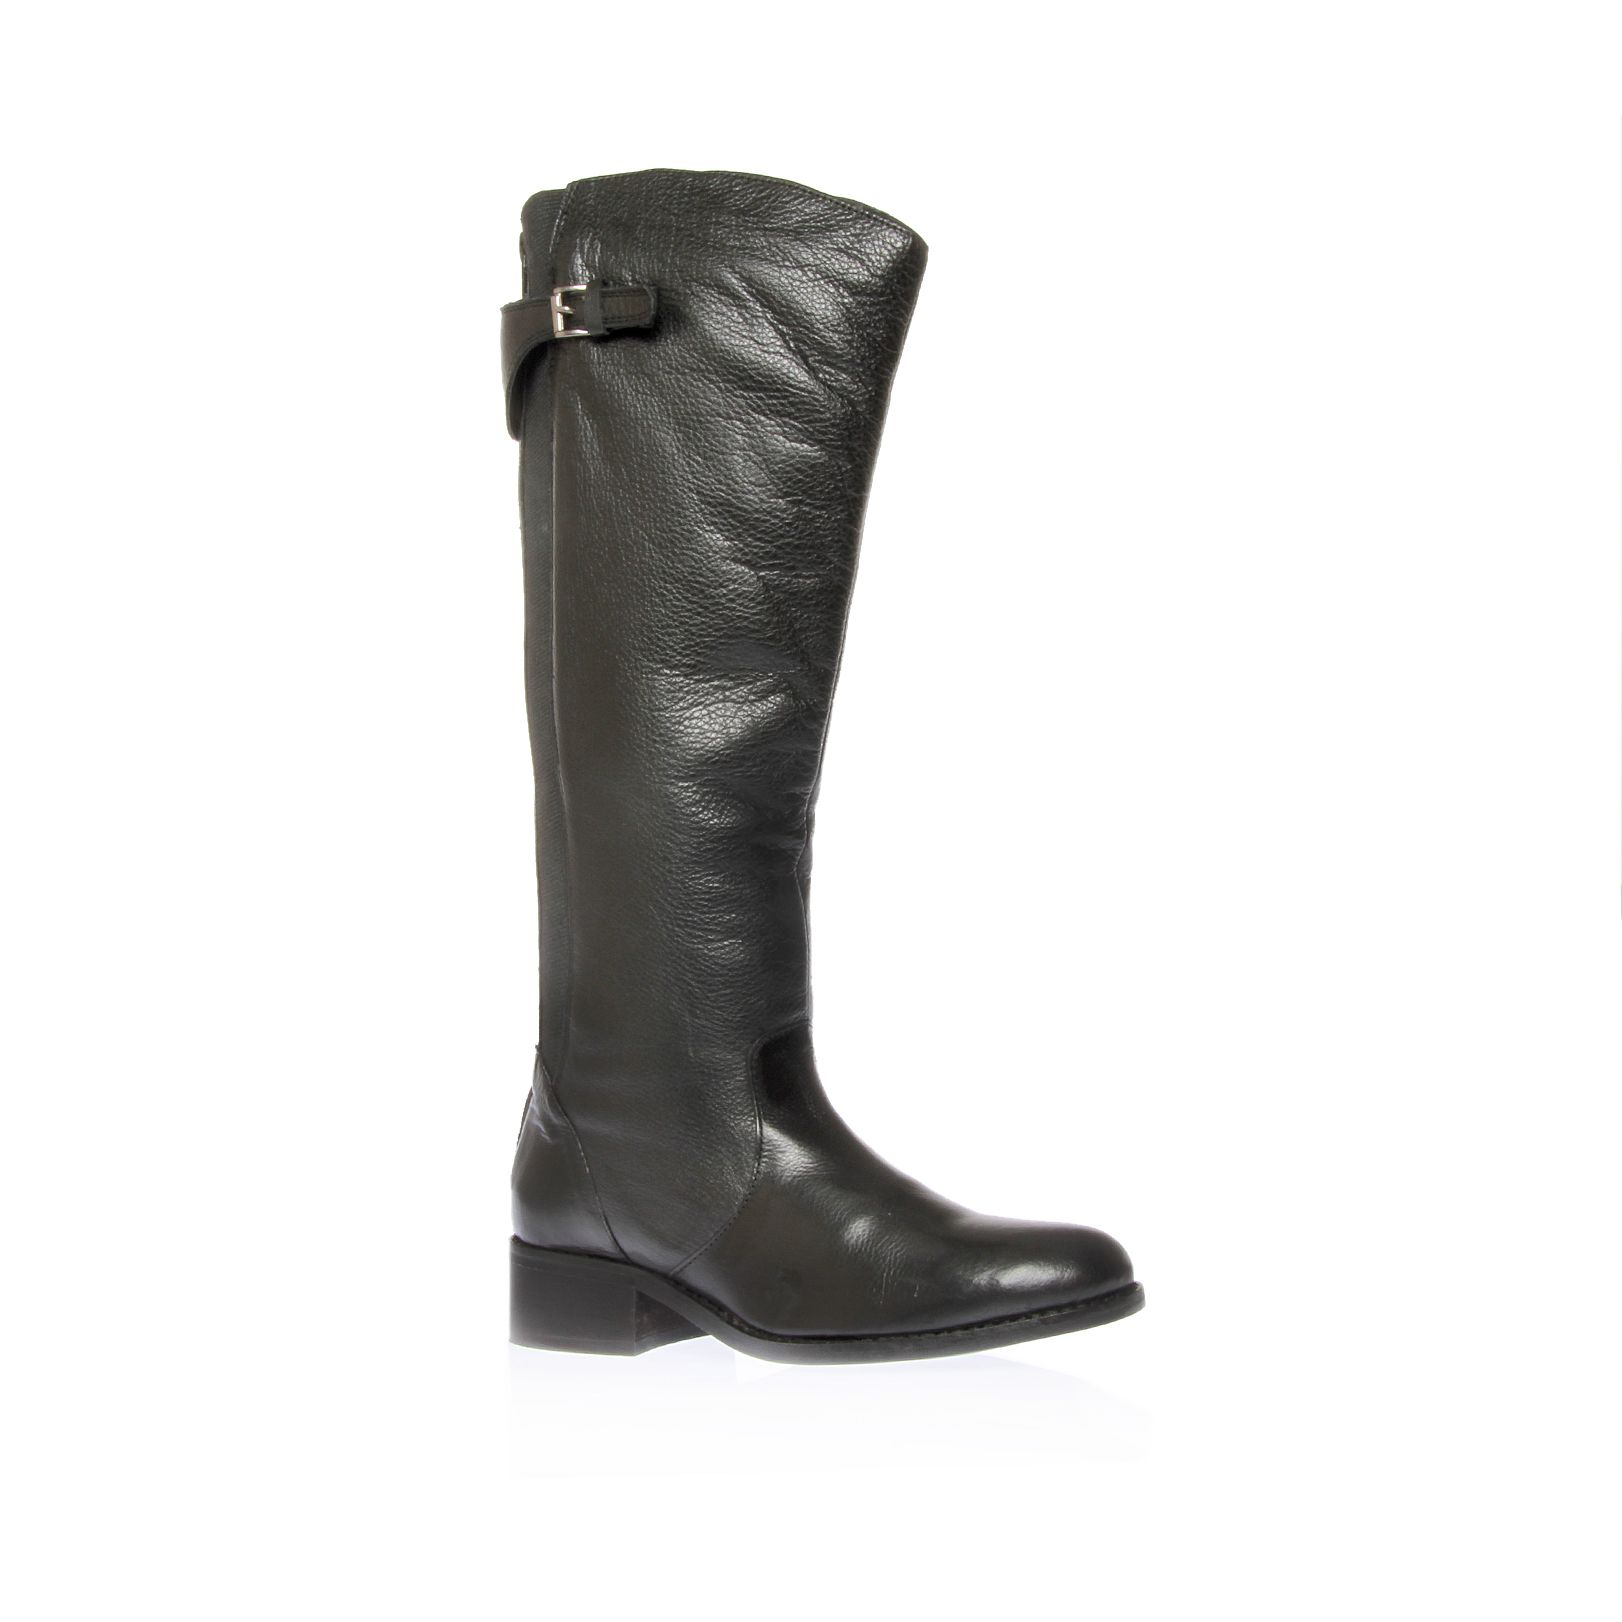 Whip flat knee high boots